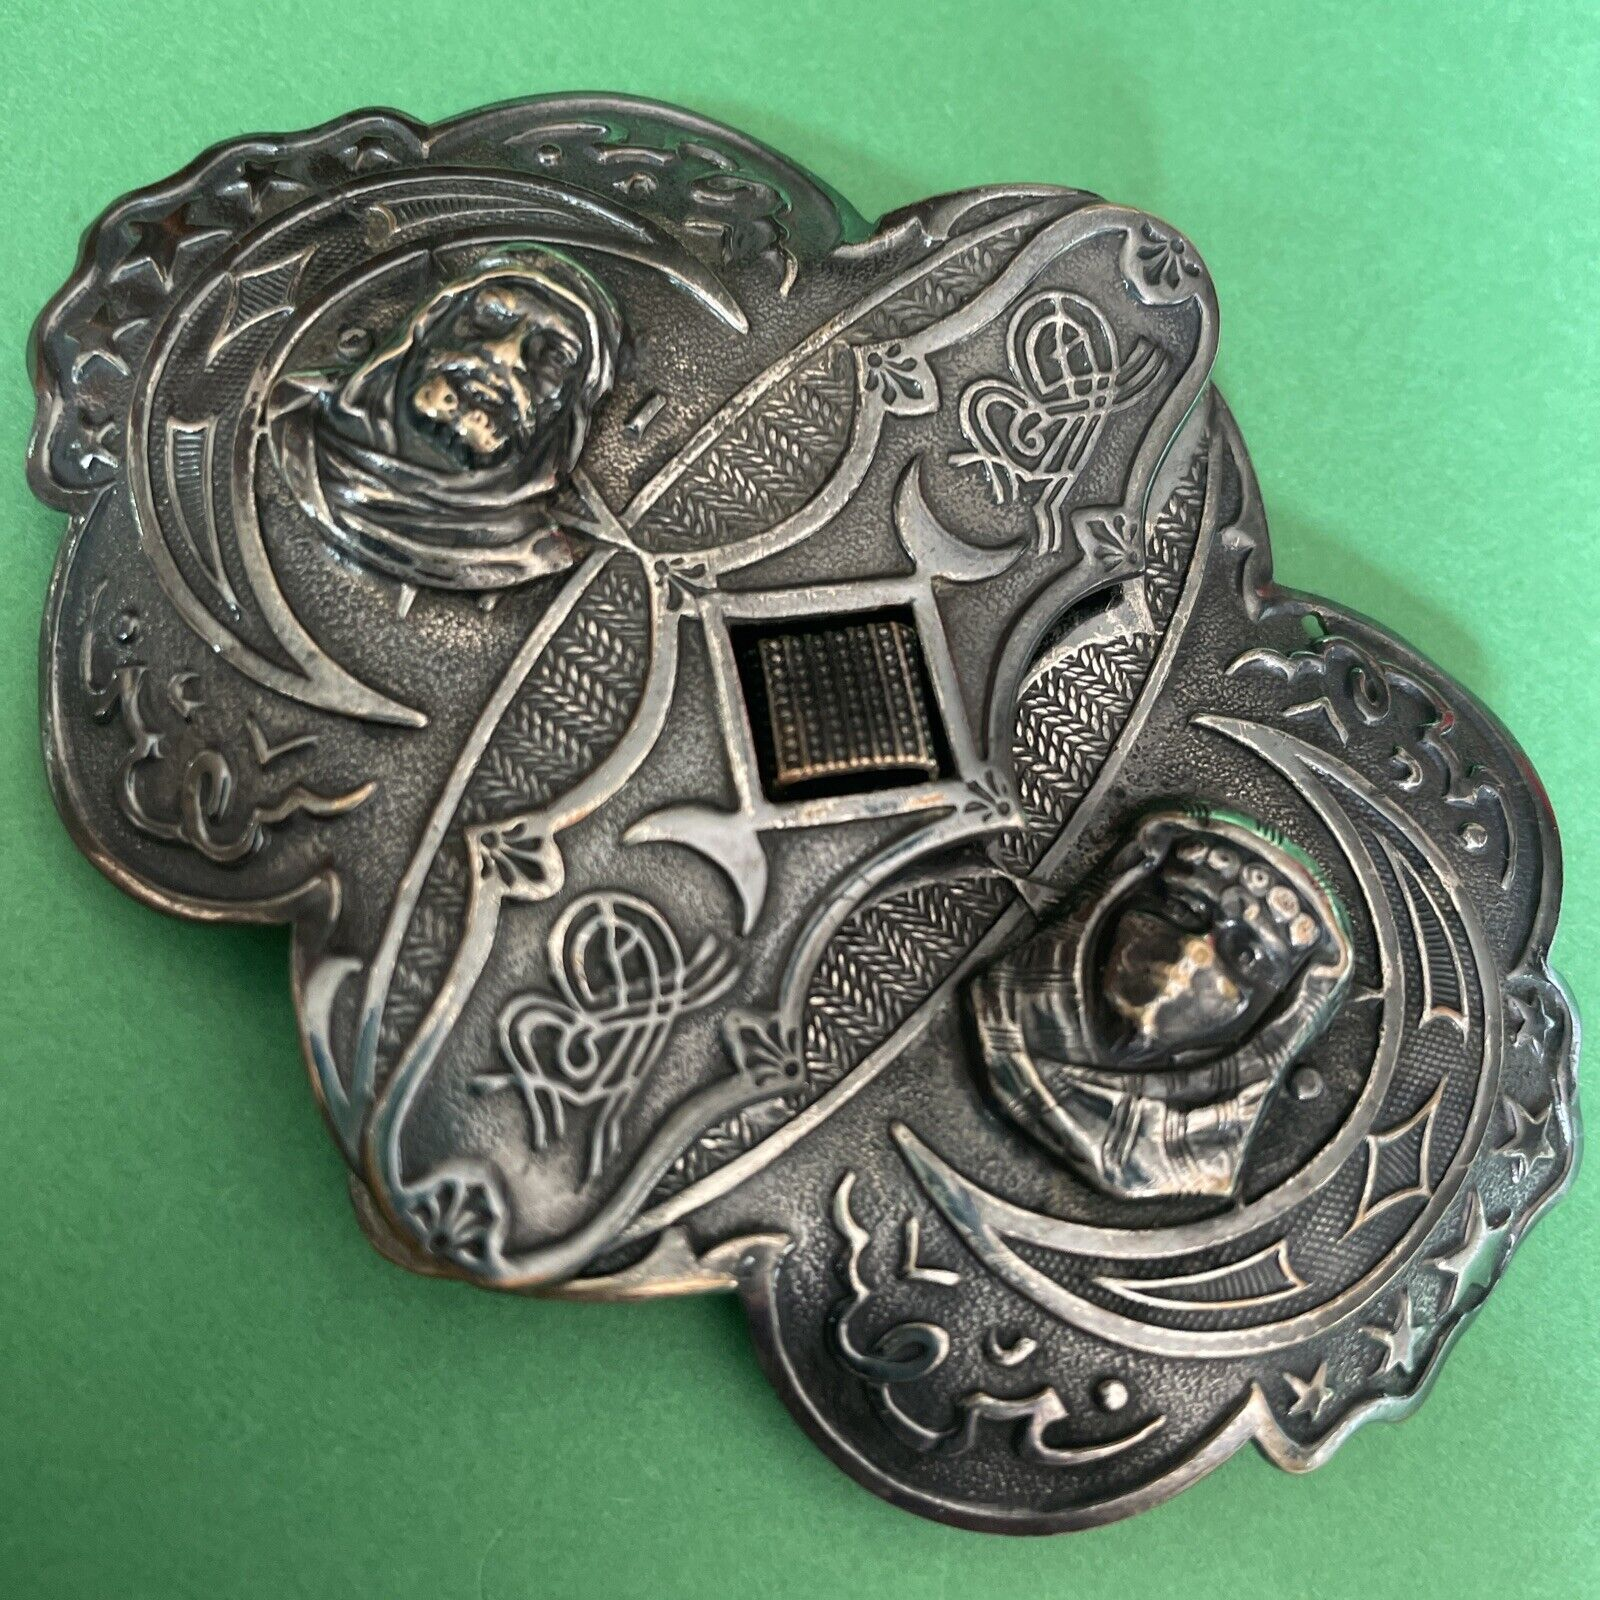 Antique Marked Depose With Medieval Lord / Lady Figure Heads ~ Belt Buckle